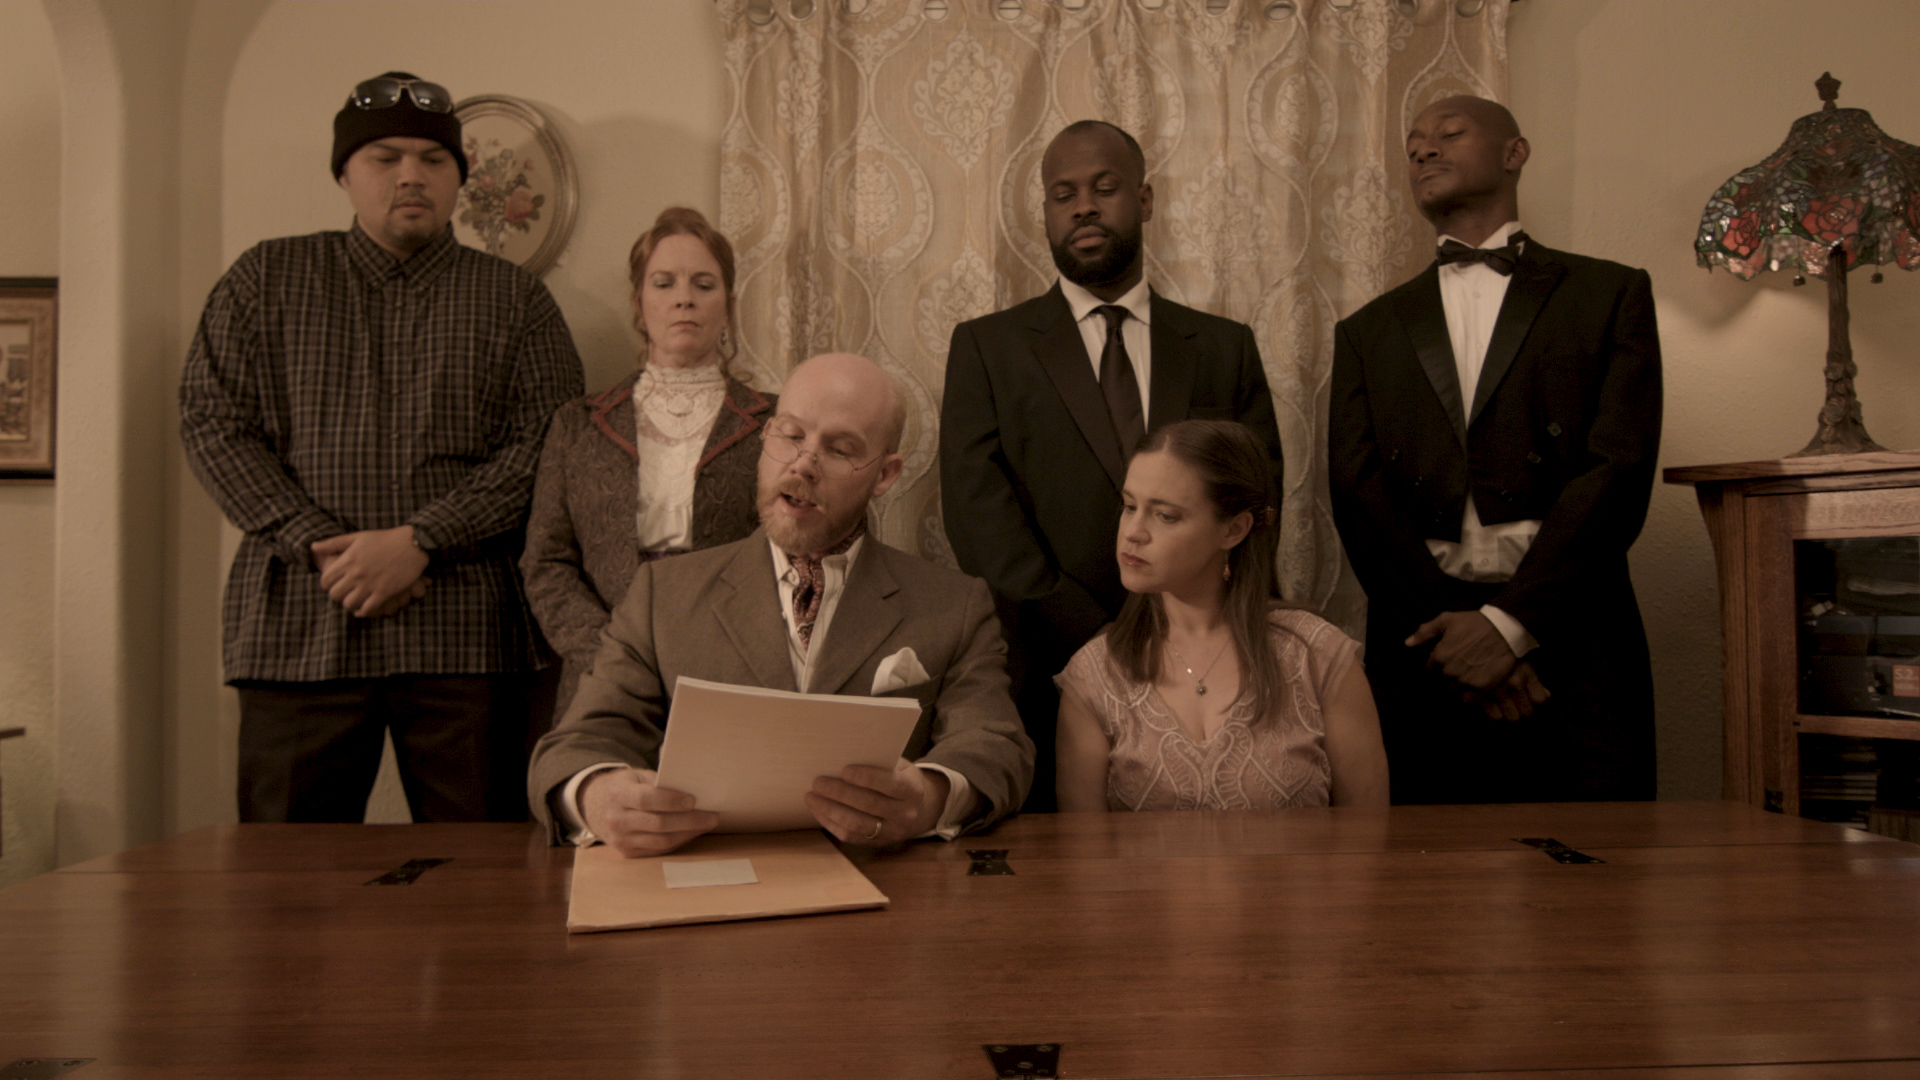 Kevin Gardner, David Tate, Jen McAllister, Luka Bayani, RonNell L. Weaver, and Anne Letscher in Compton Abbey (2018)